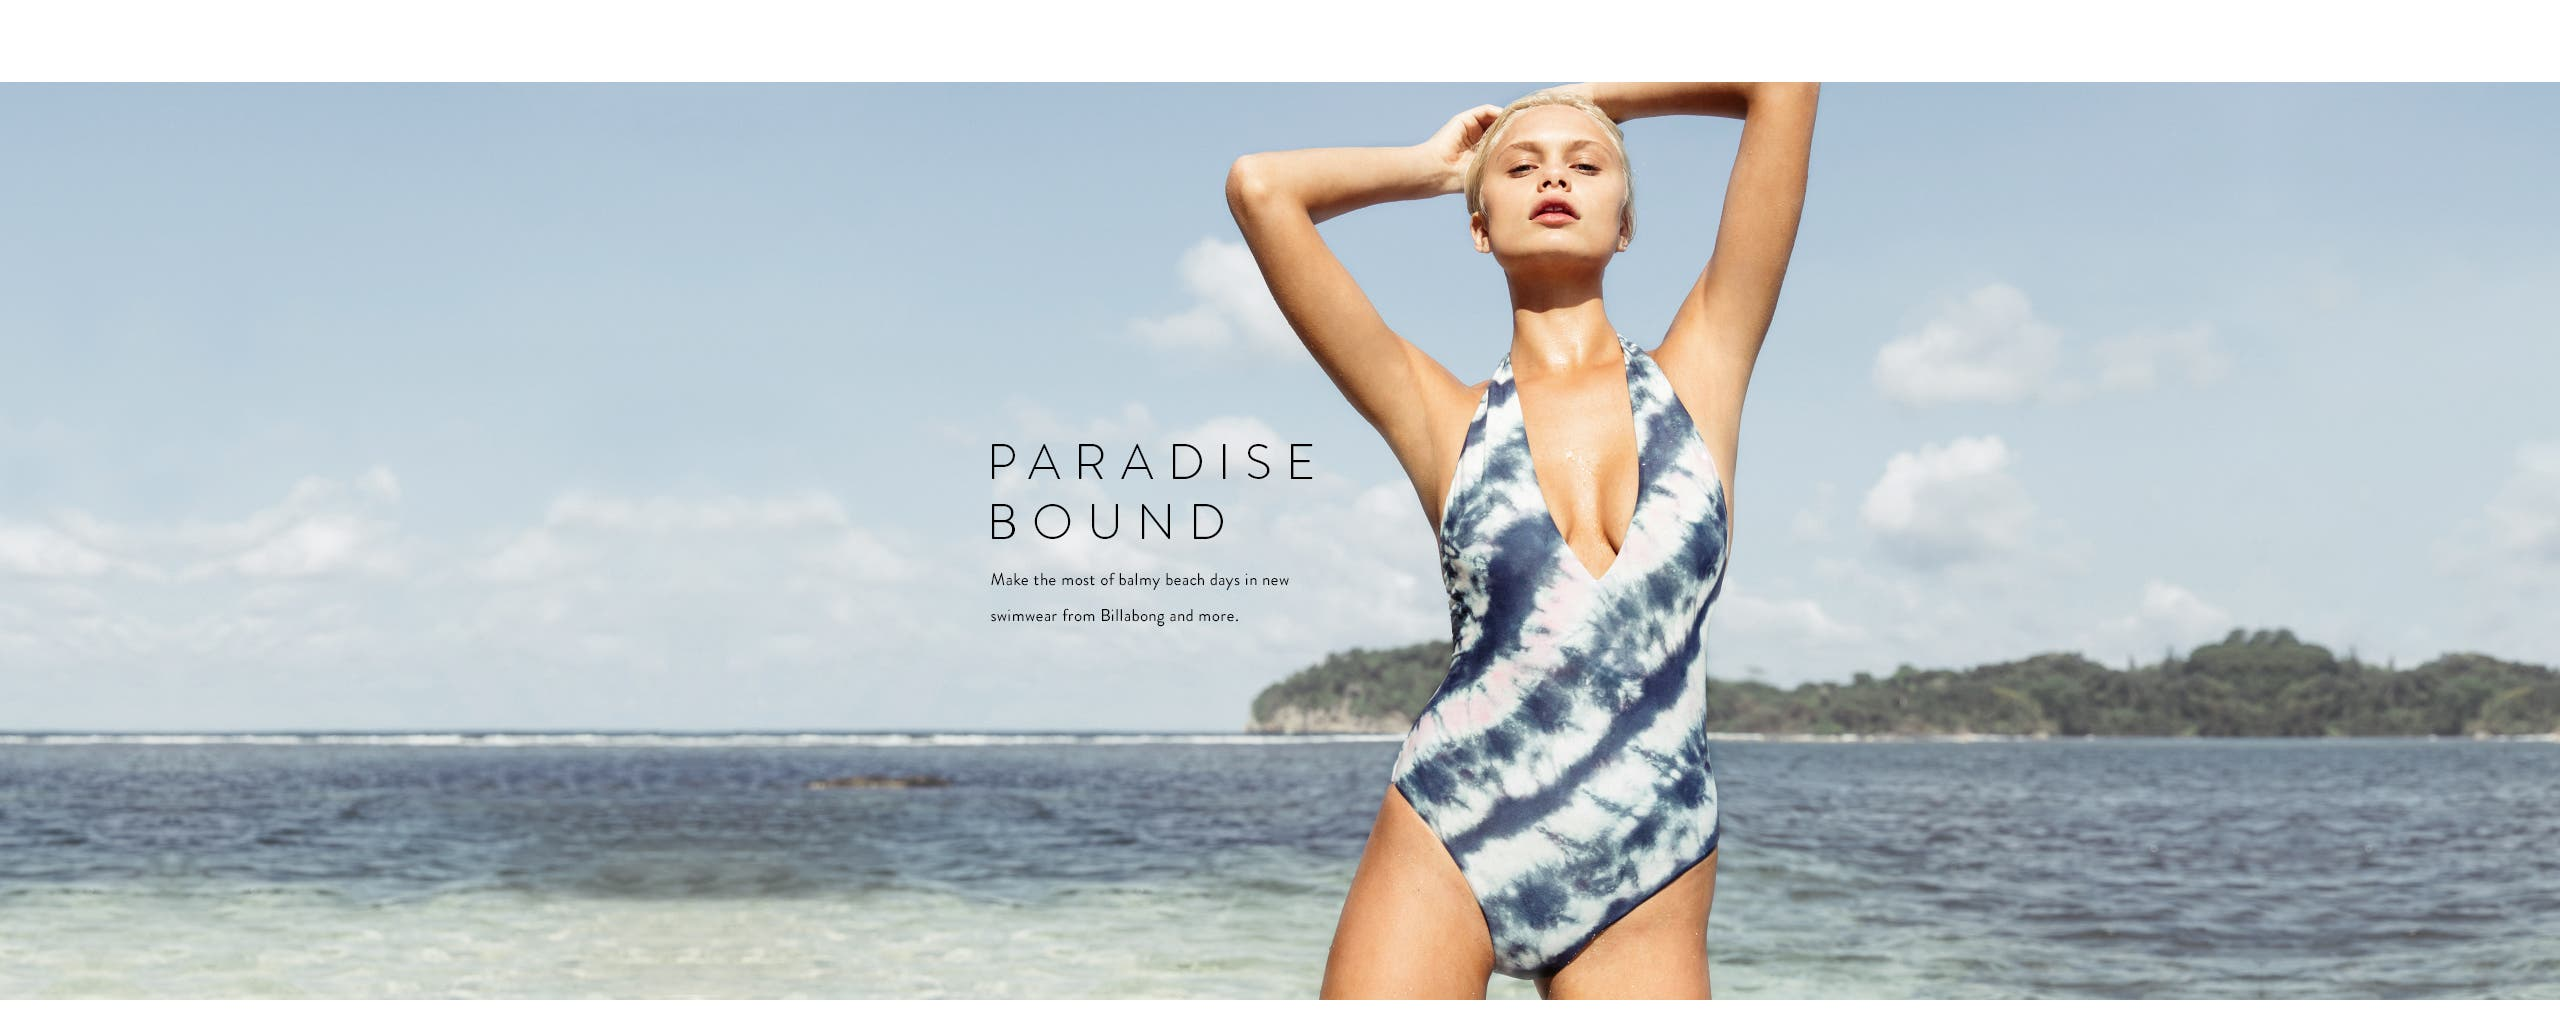 Paradise bound. Make the most of balmy beach days in new swimwear from Billabong and more.